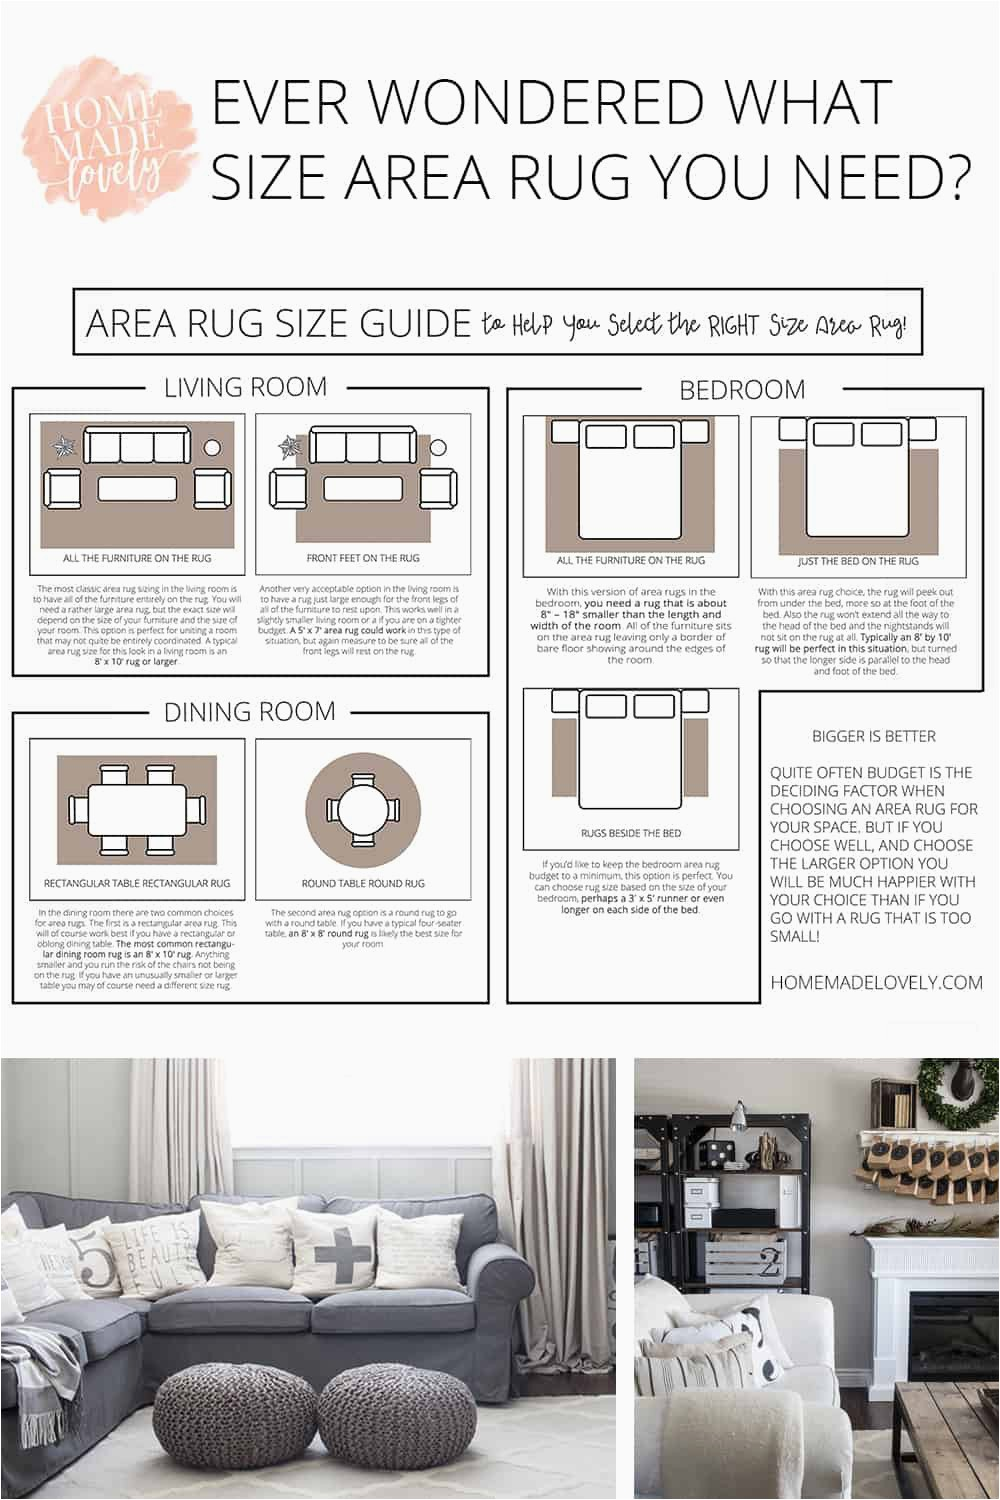 AREA RUG SIZE GUIDE pin